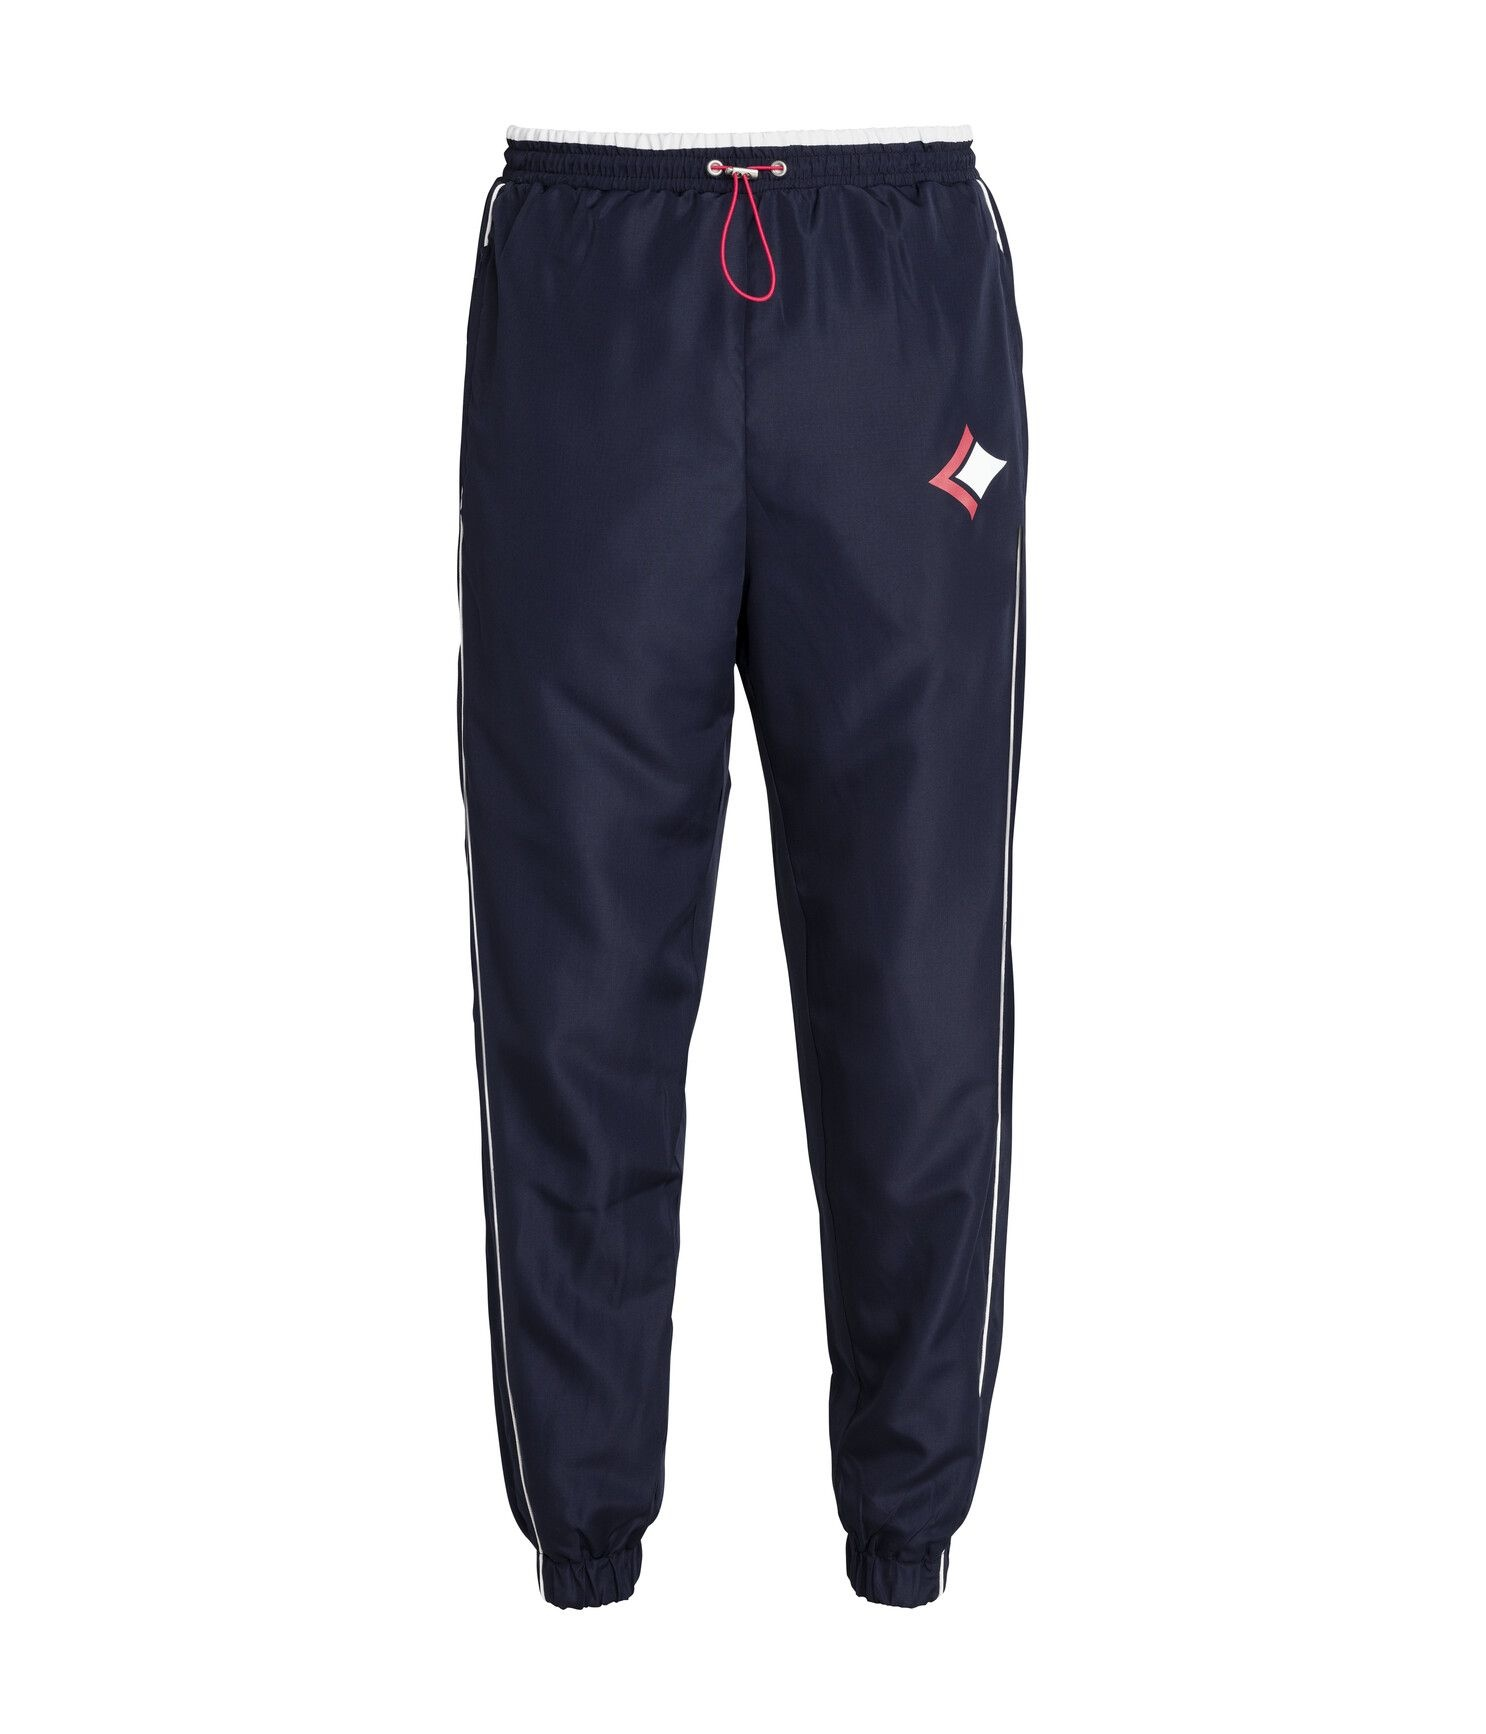 Bjorn Borg Wind Pants